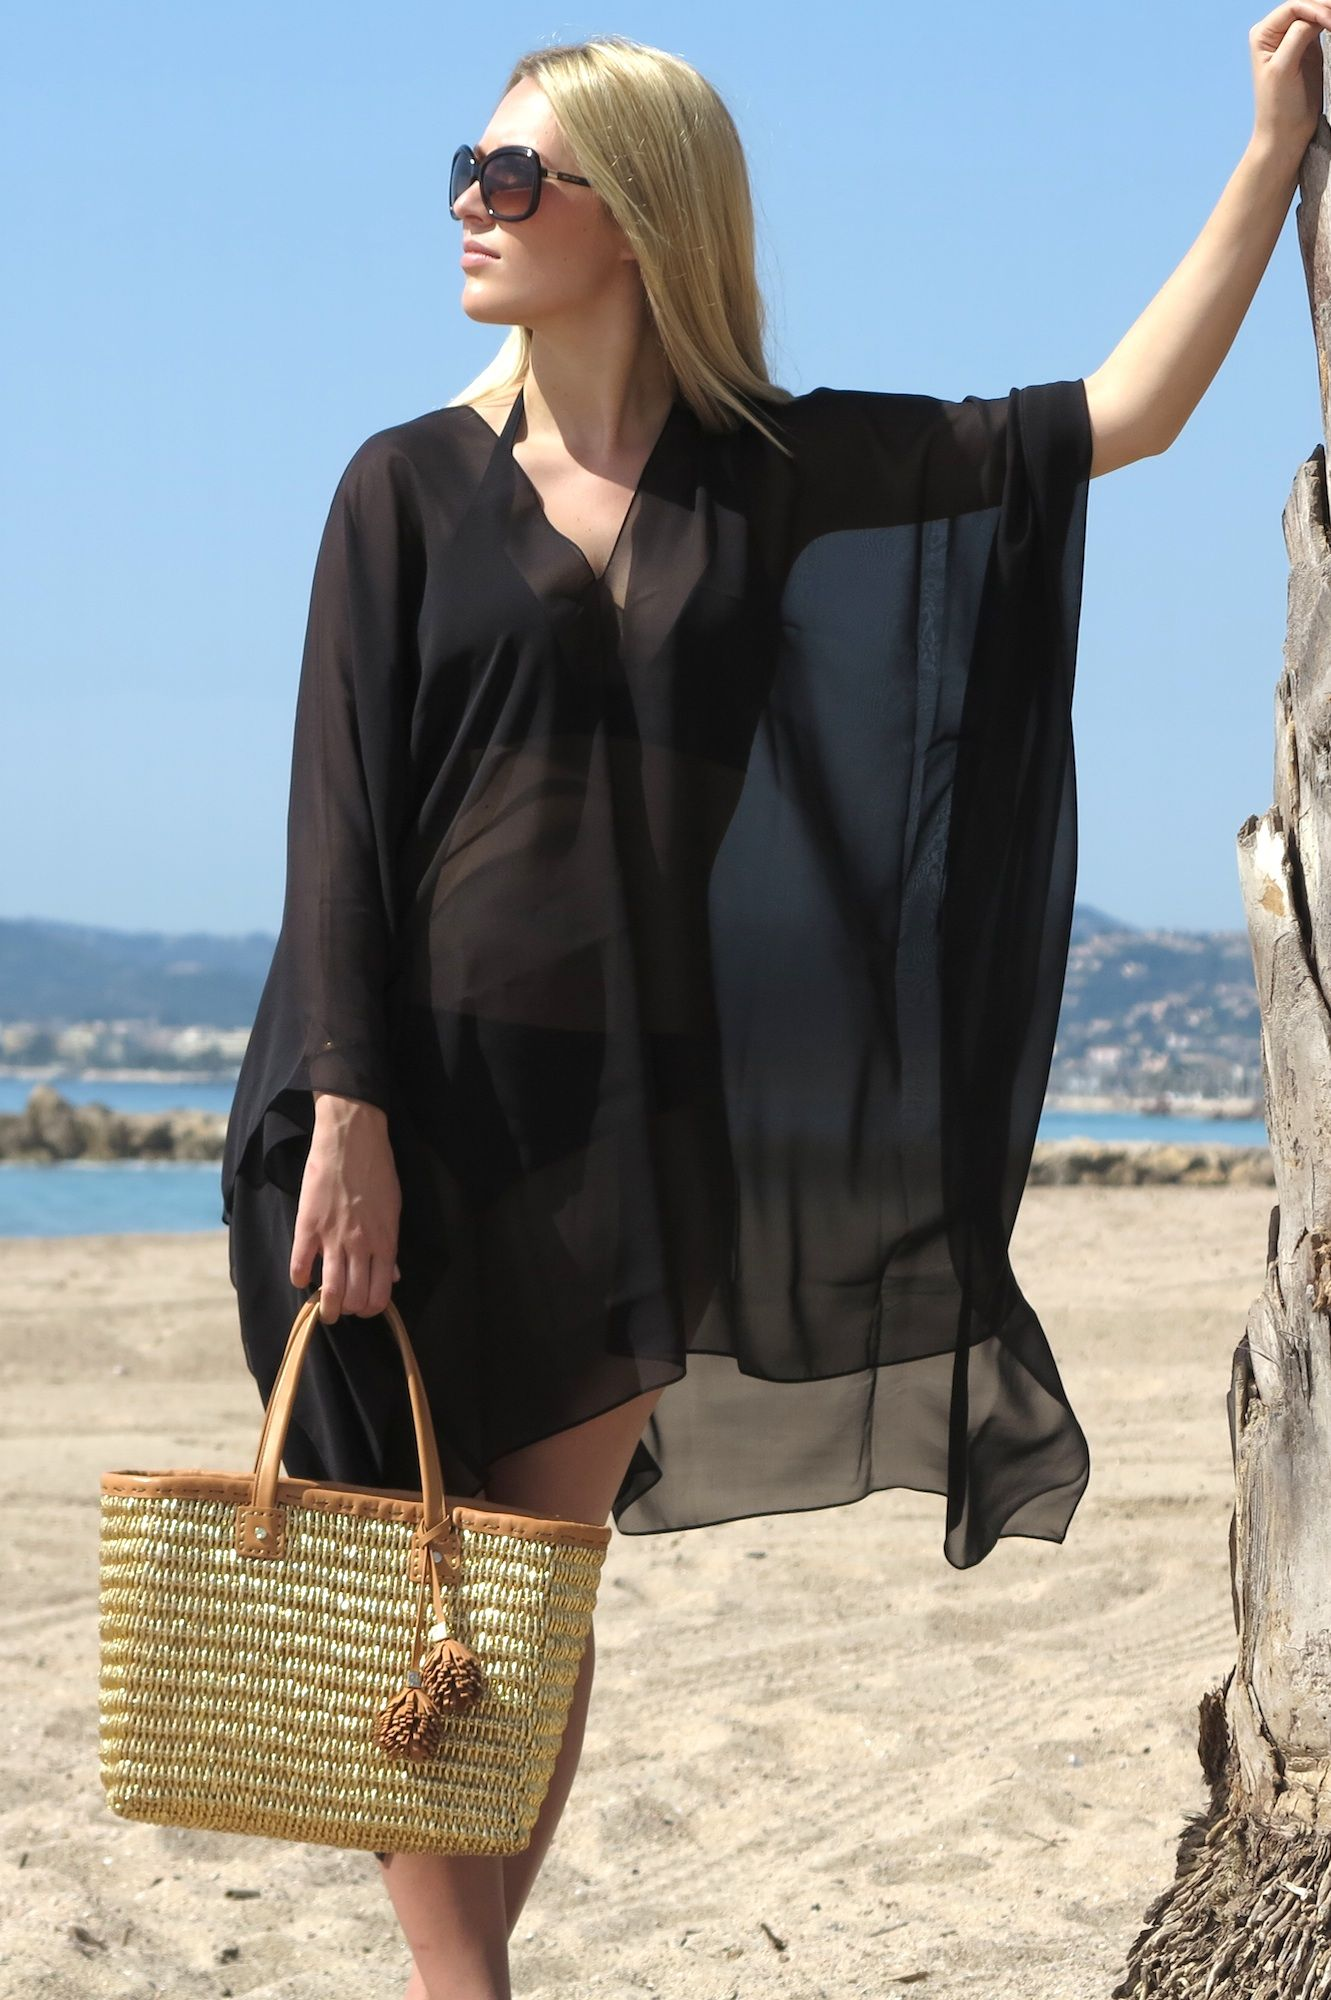 bccb603fce Nothing like a plain black beach cover up... Online Luxury Beachwear and Cover  Ups | black tahiti cover up